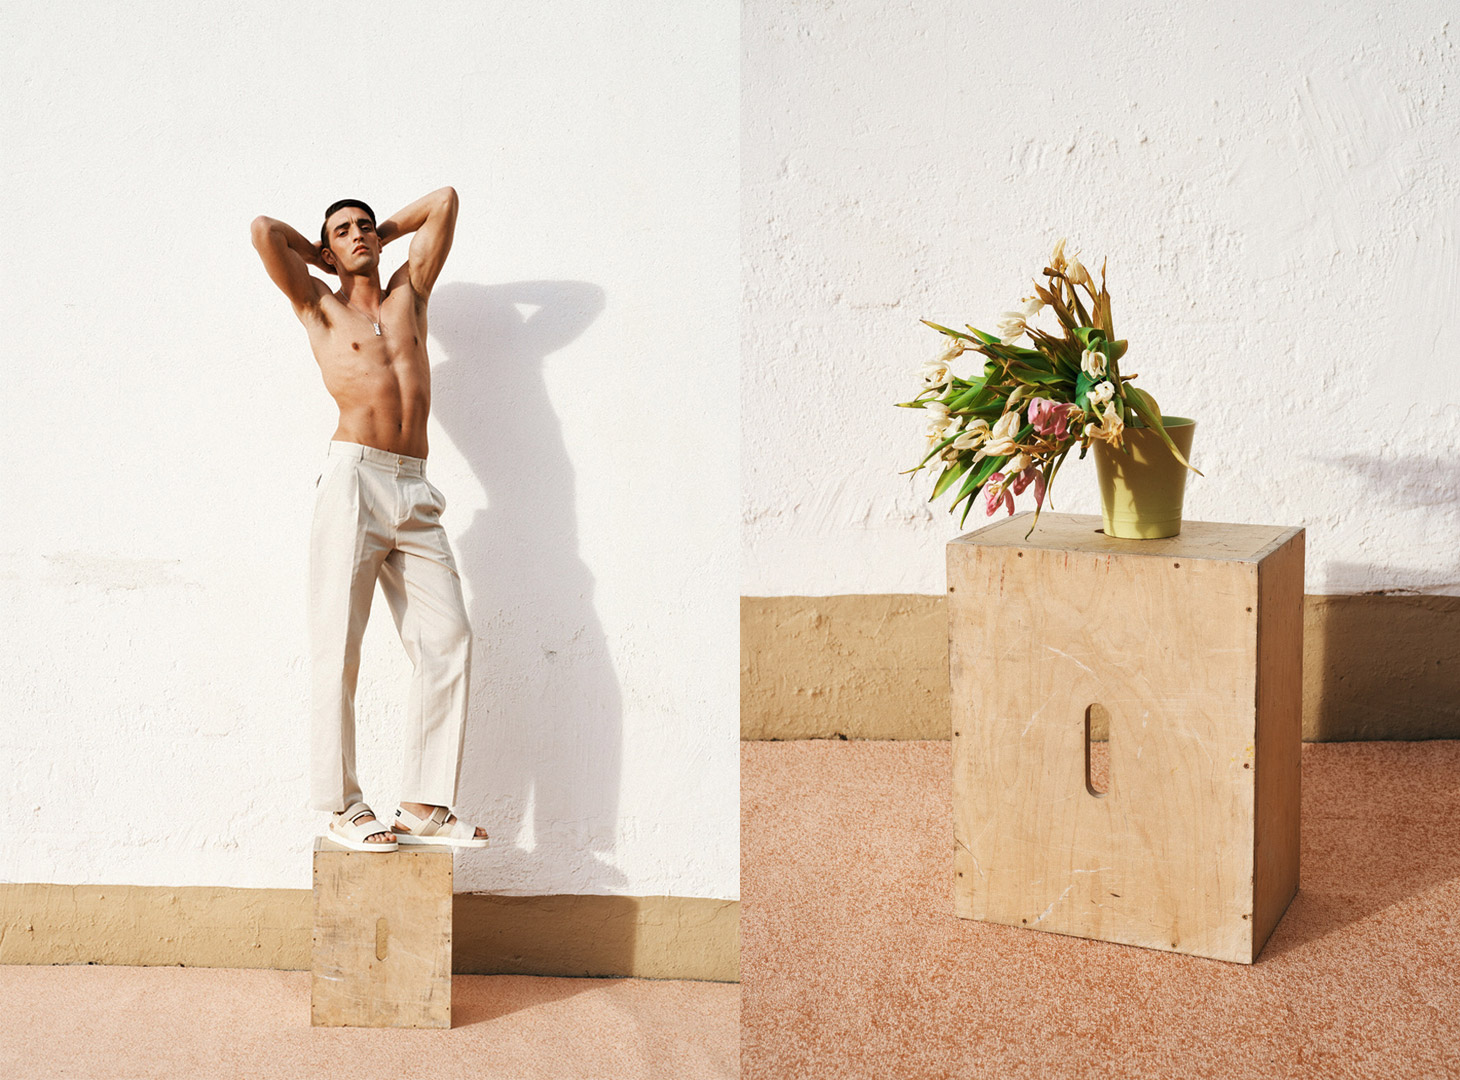 man standing on box withered flowers